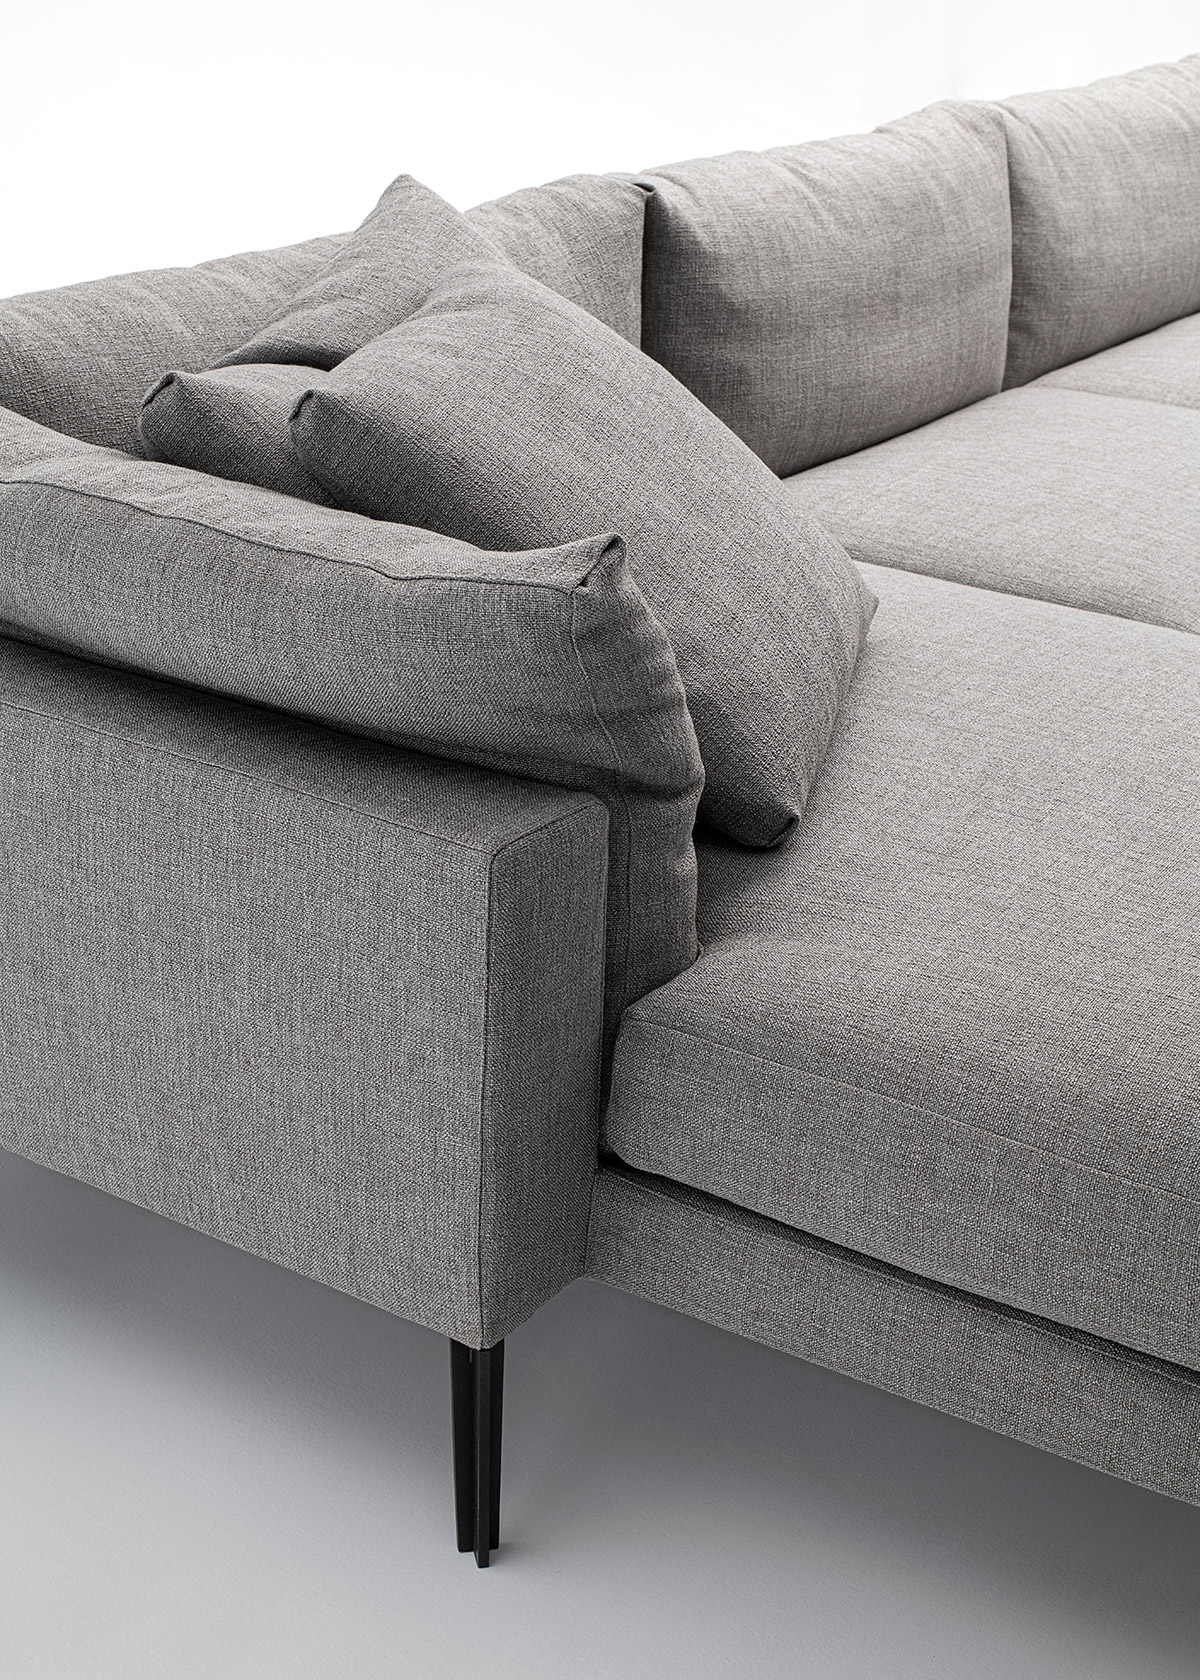 Floyd-Hi 2 sofa system in grey fabric by Living Divani